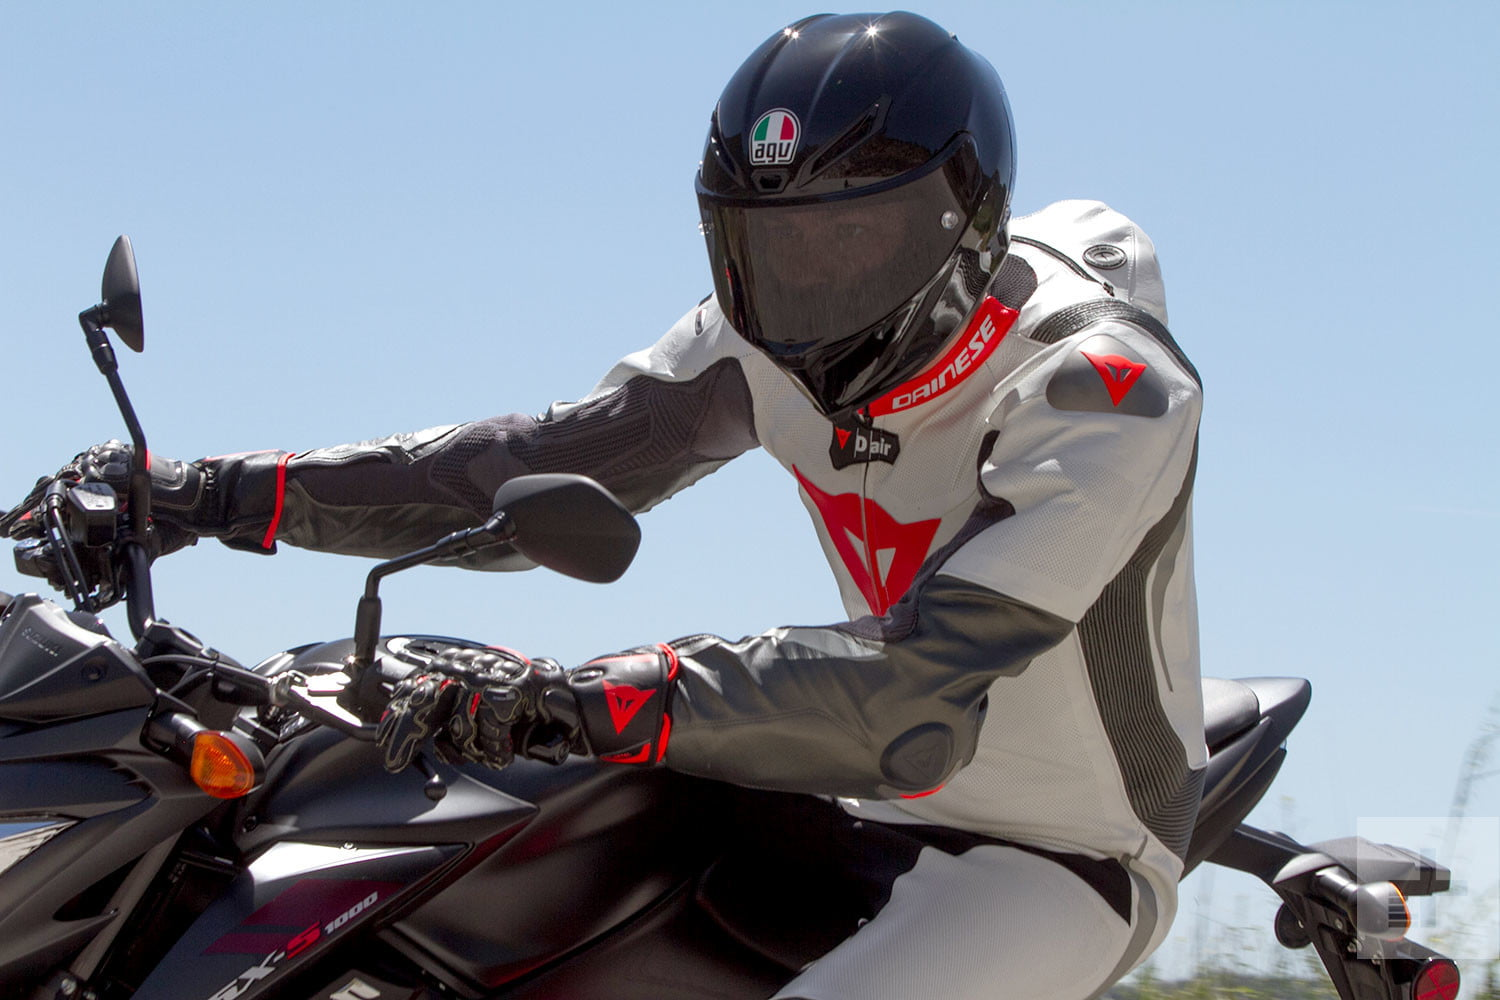 eb2a5ccf Dainese's Custom Works motorcycle suit is one even Iron Man would envy